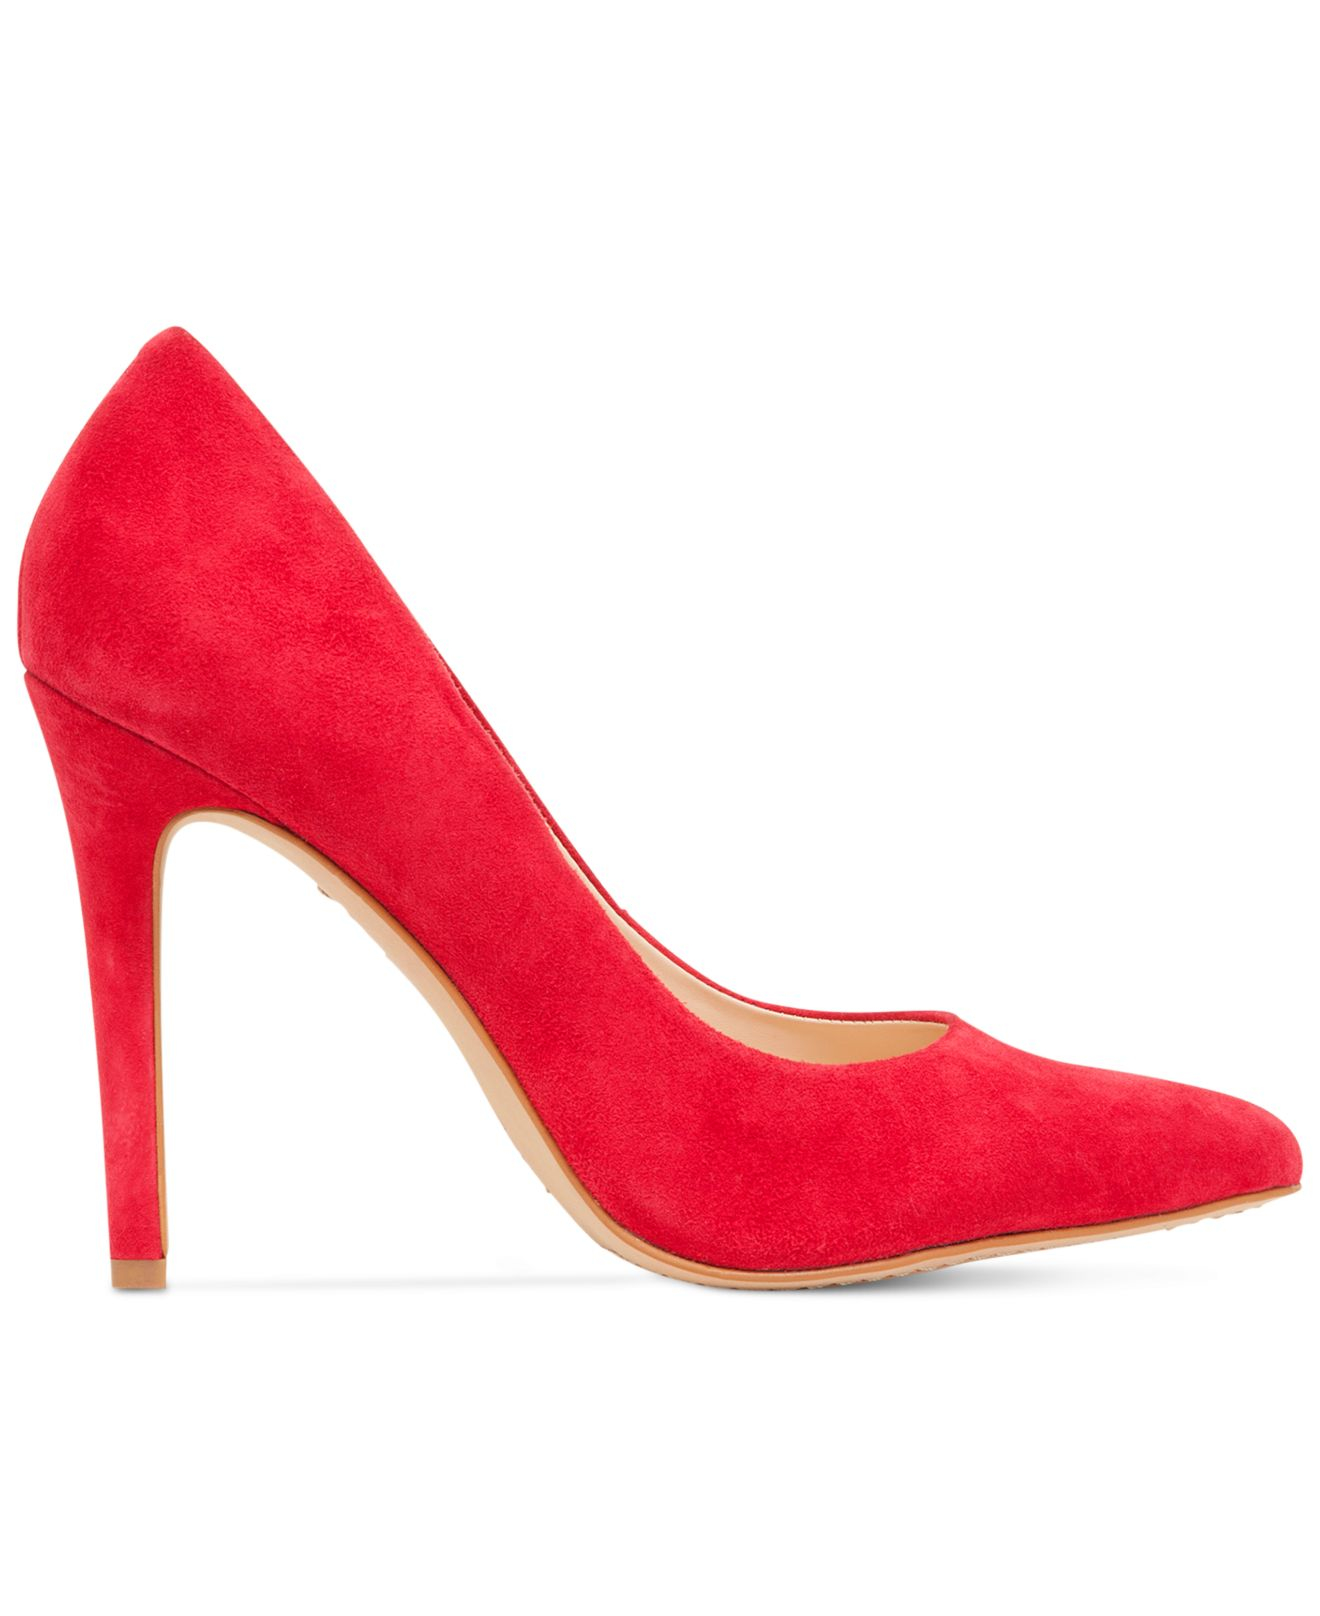 Free shipping and returns on Women's Red Pump Heels at palmmetrf1.ga